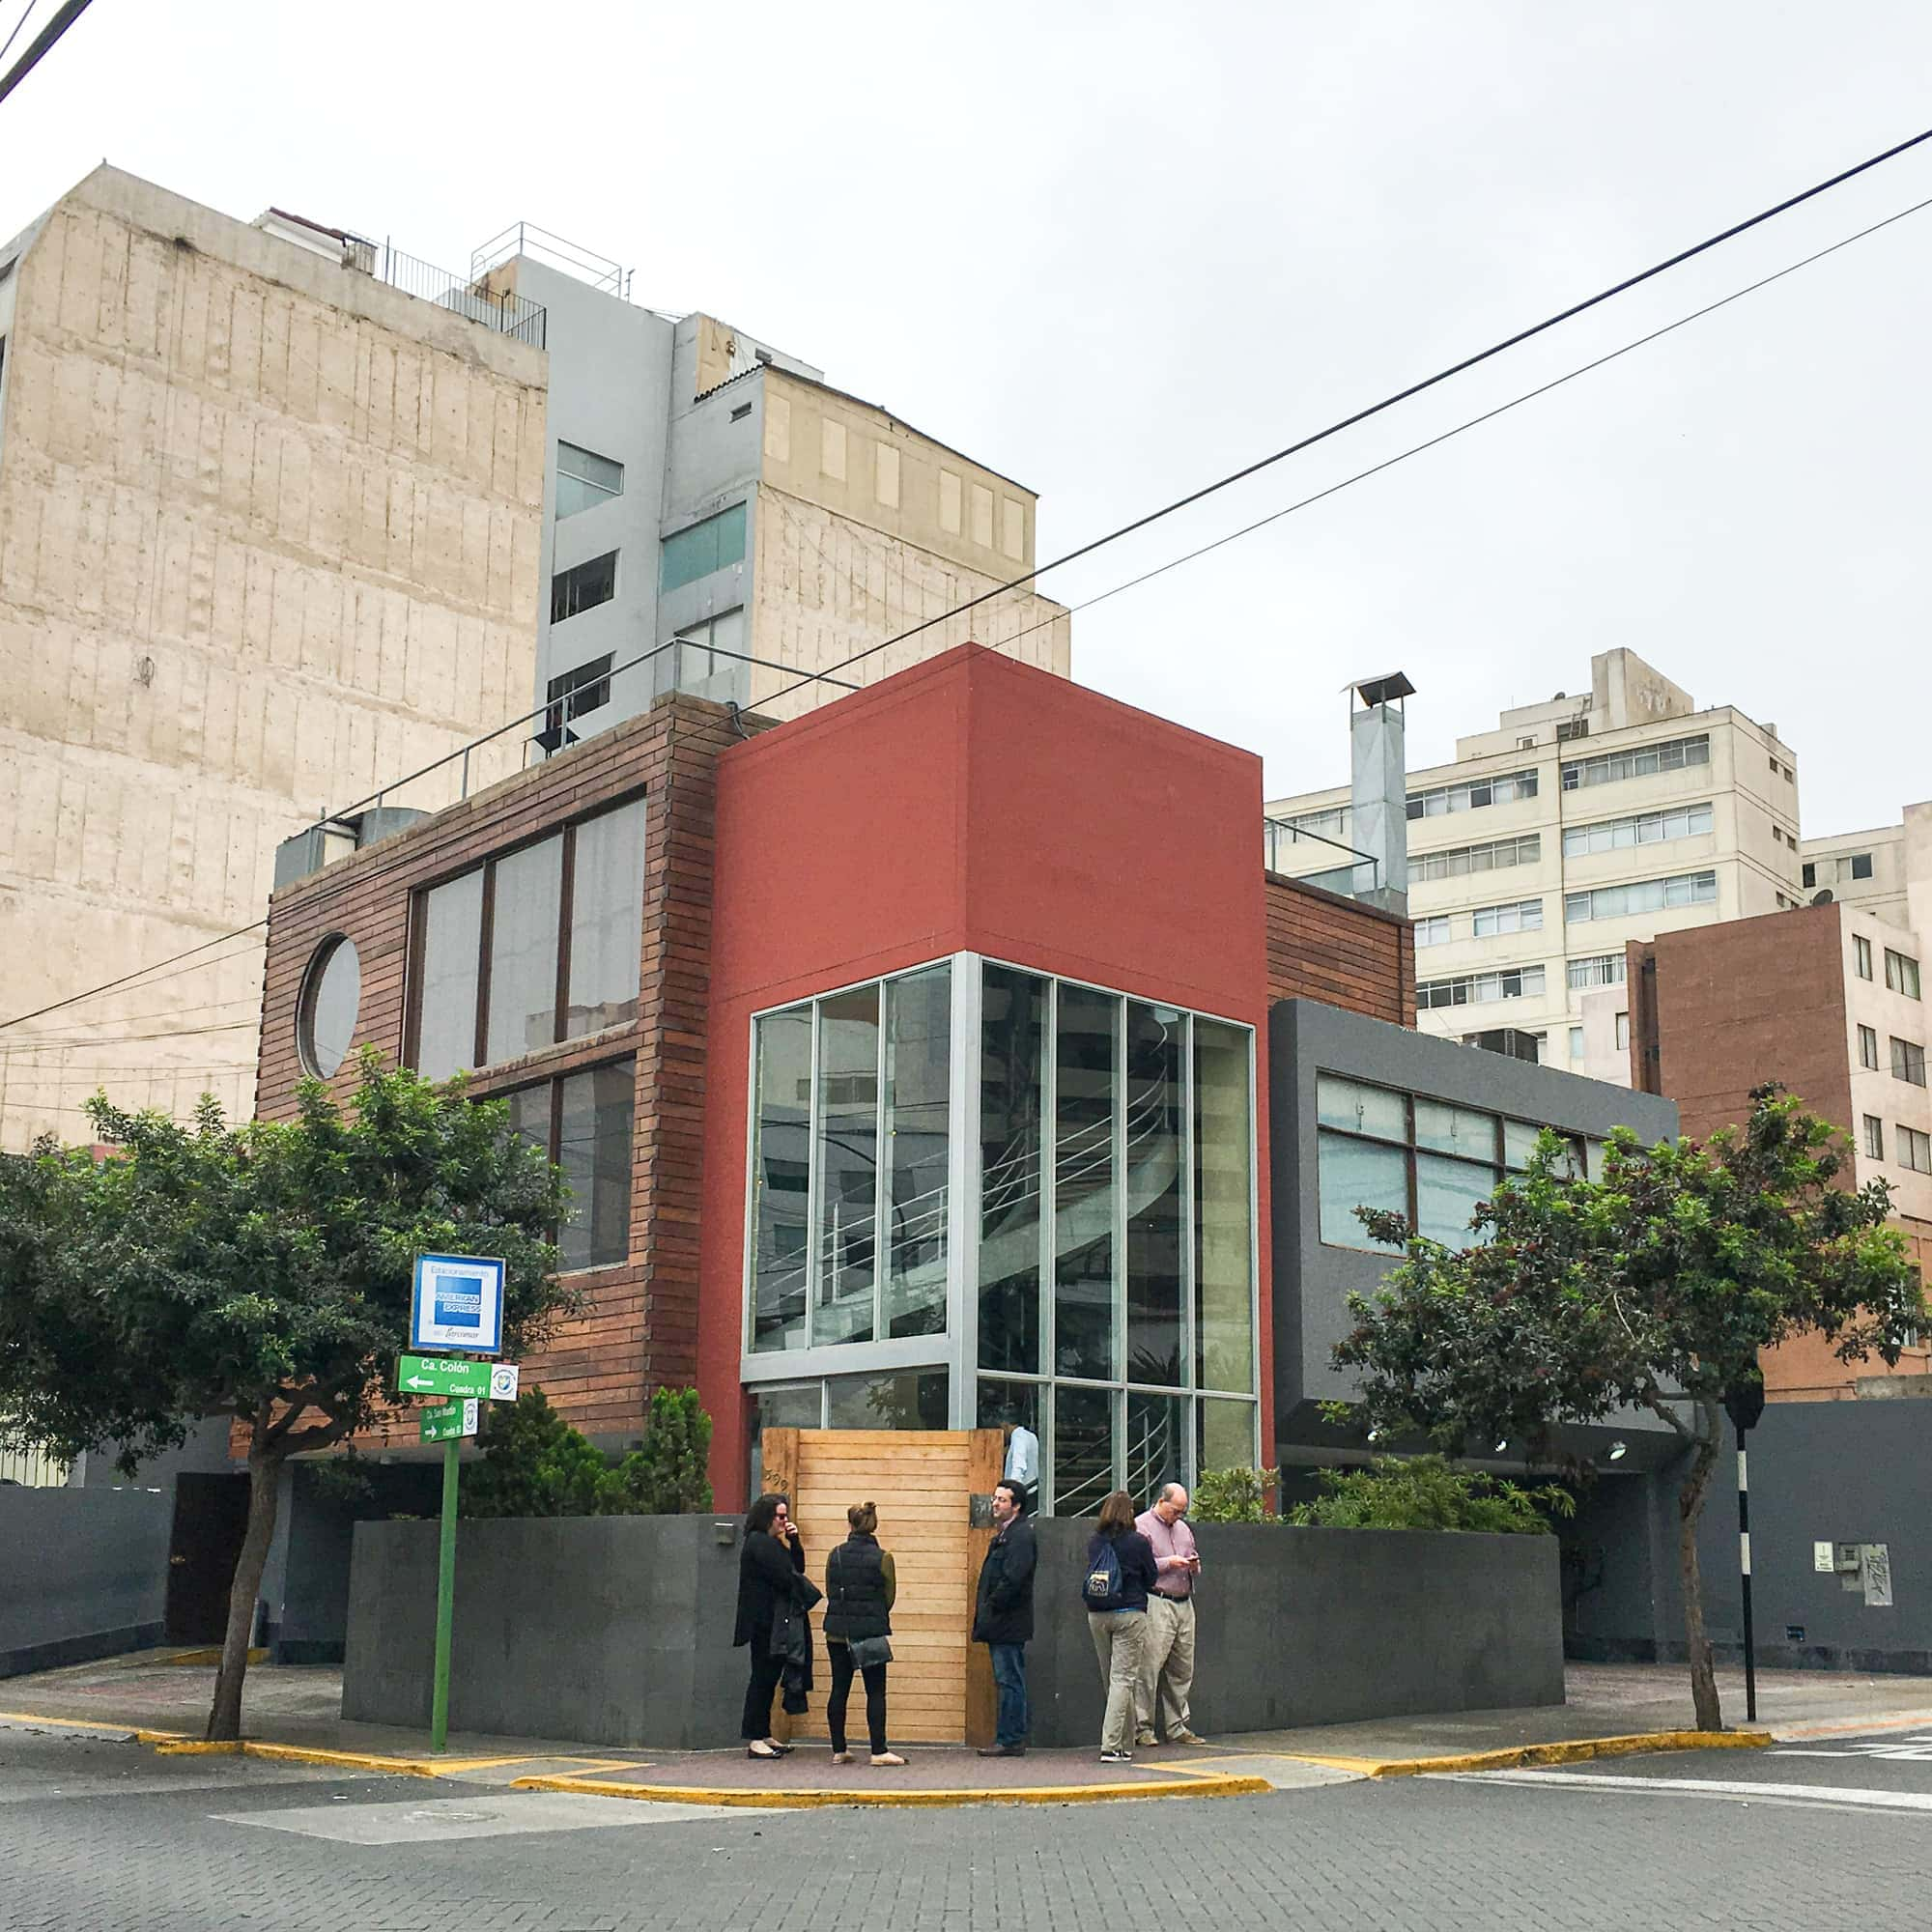 Maido restaurant in Miraflores, Lima